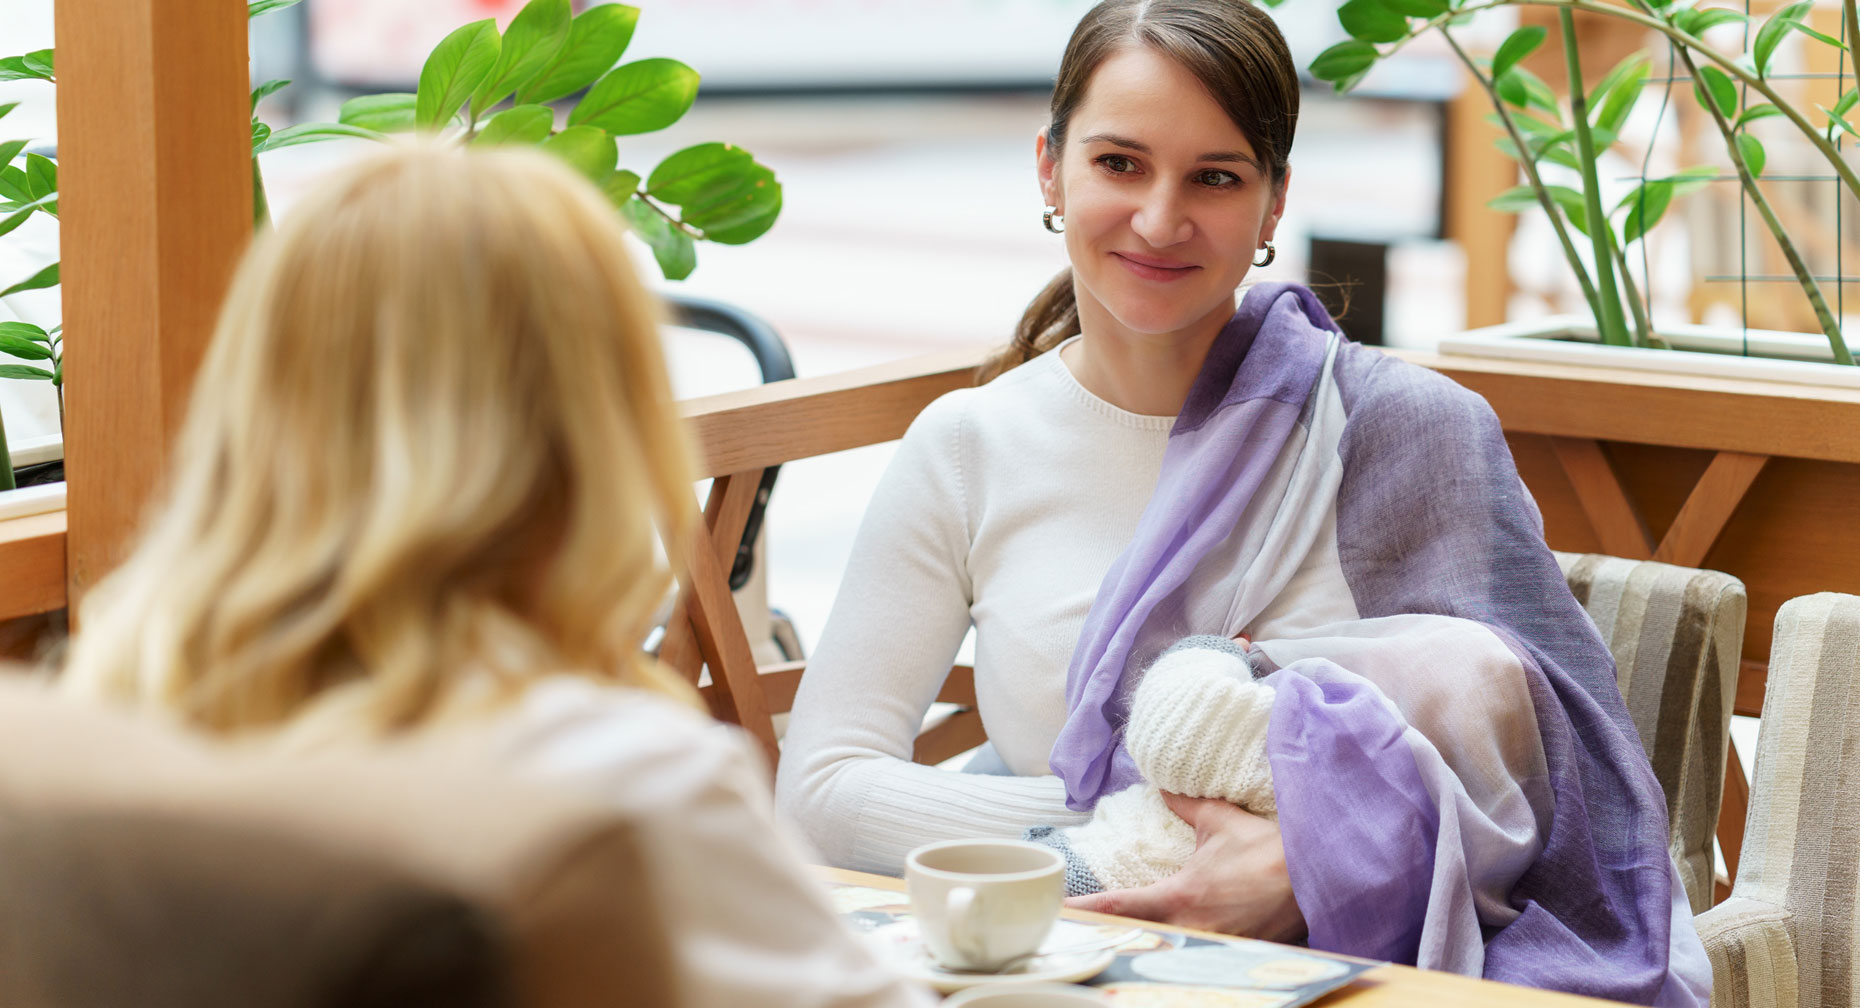 Public Tips Helpful Tips To Feel Confident While Breastfeeding In Public L